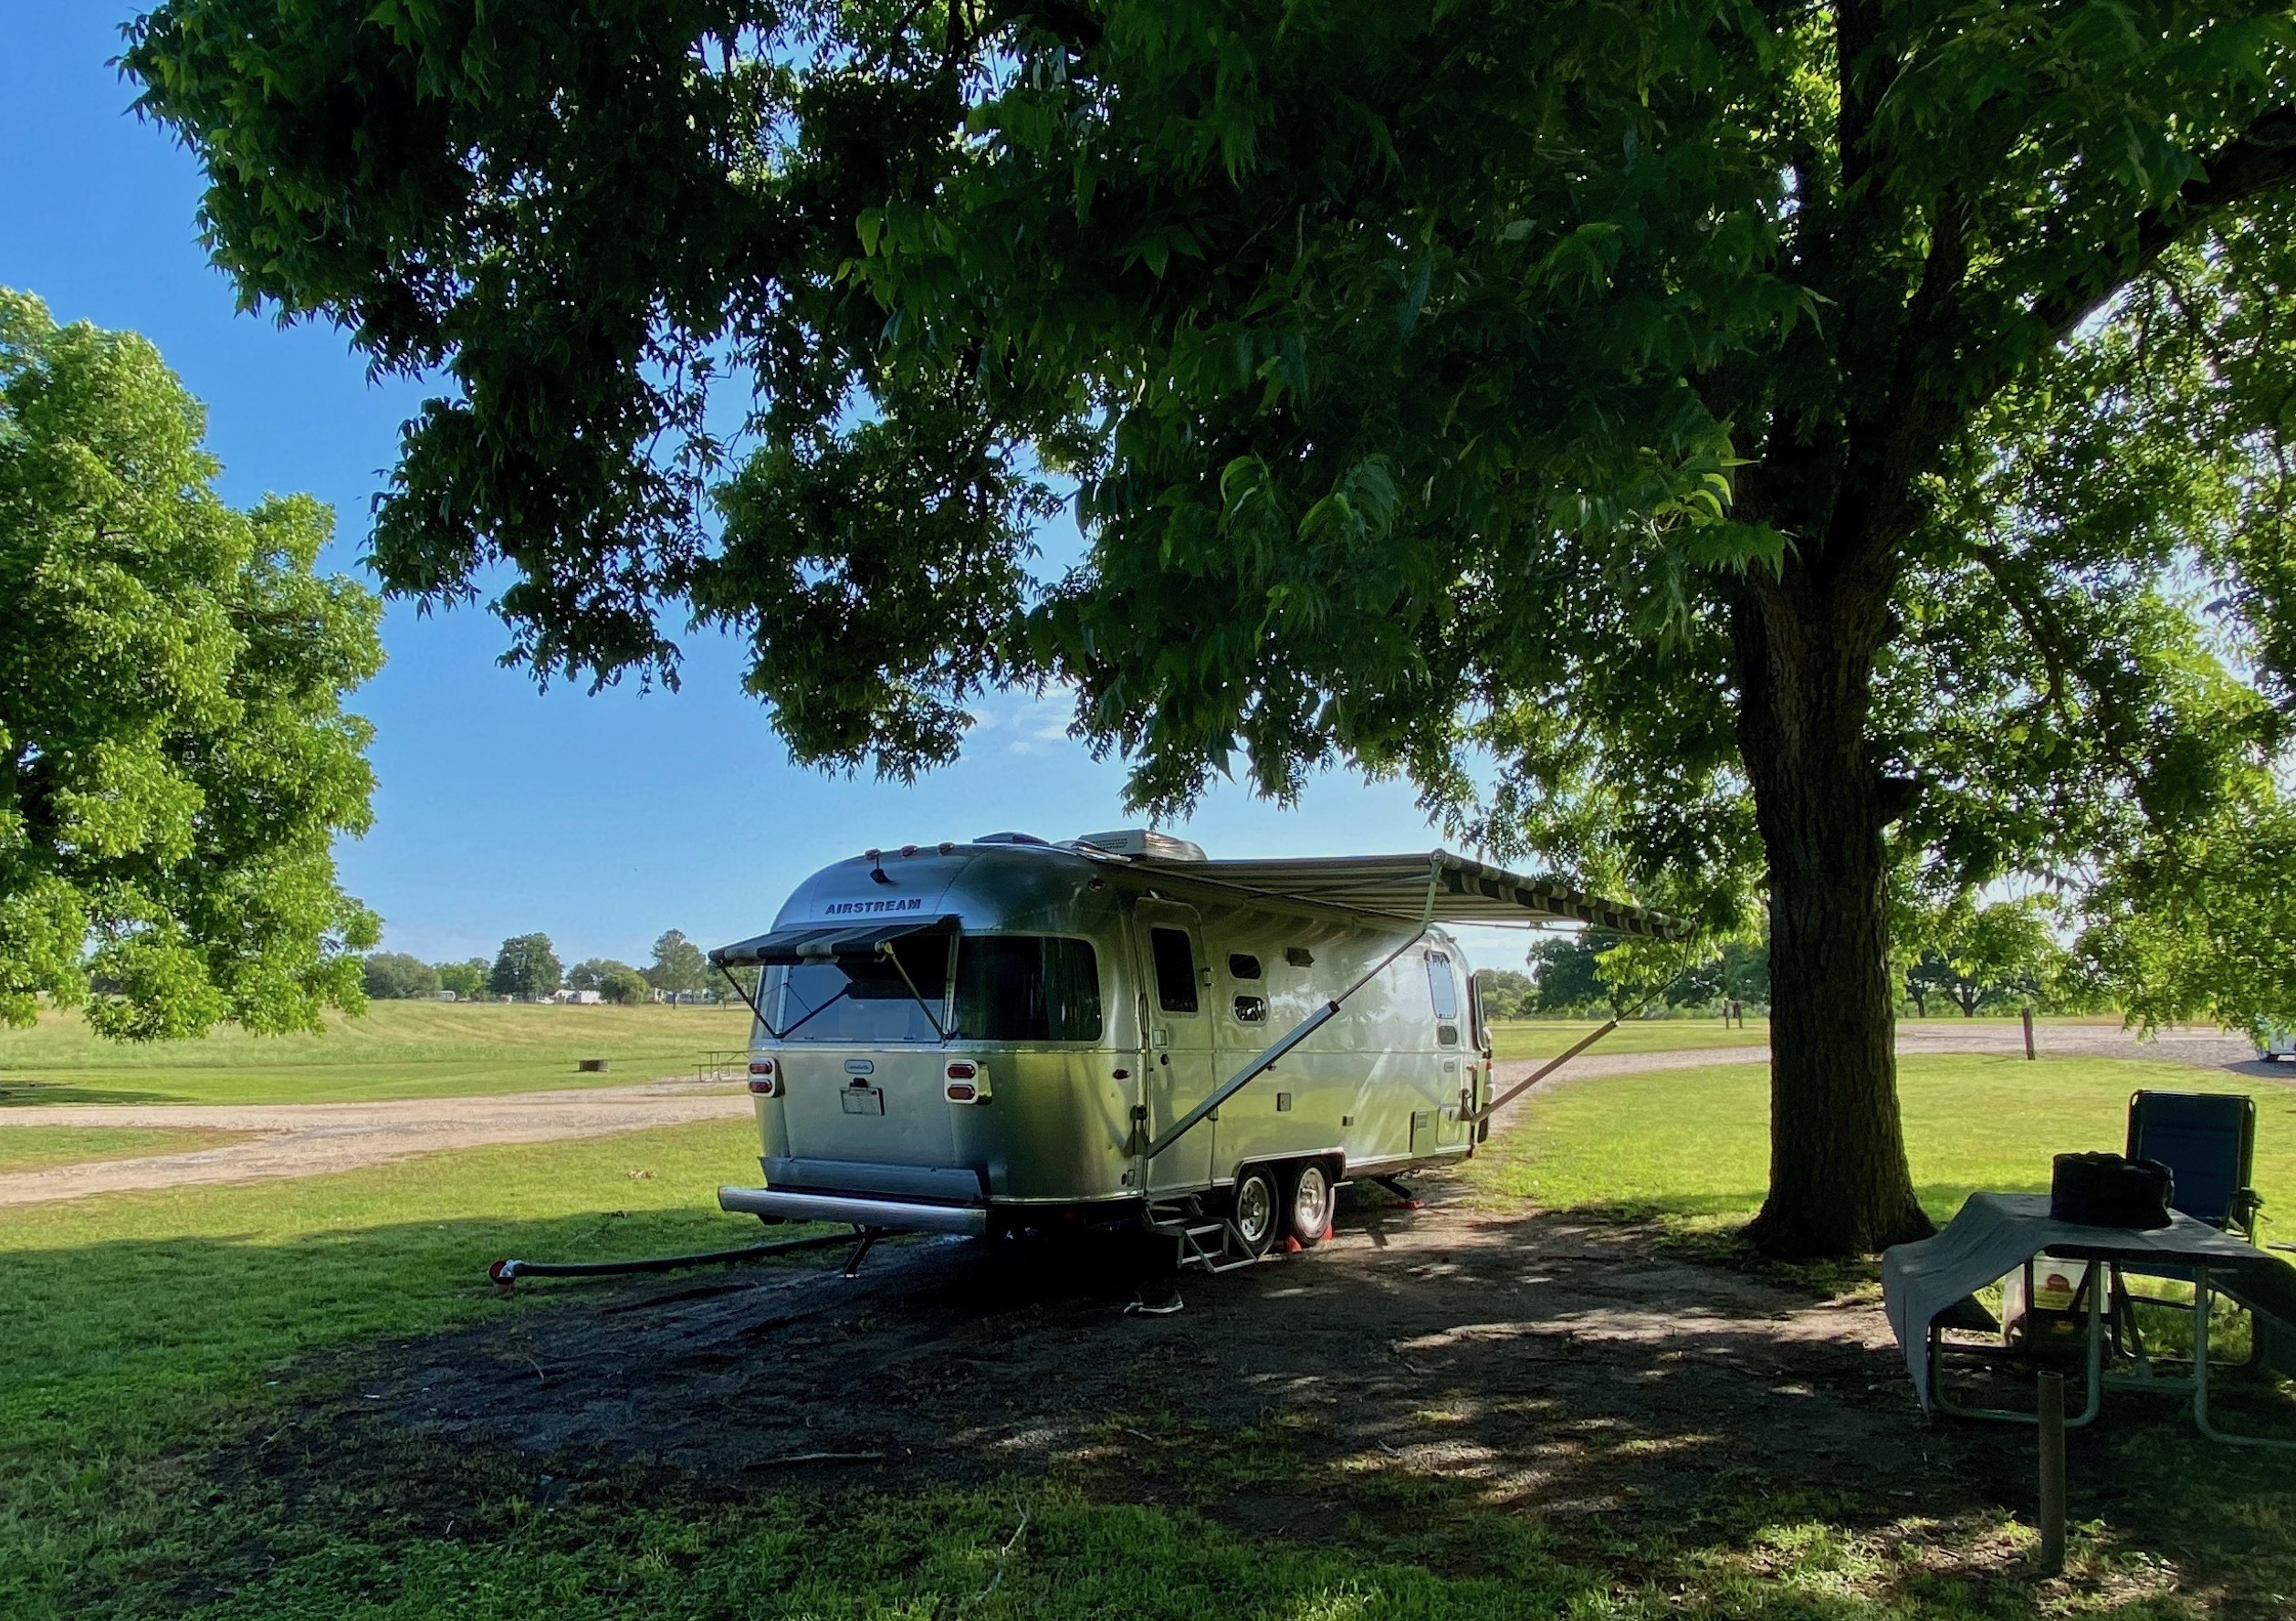 Travel trailer camping on a privately owned RV lot in Texas